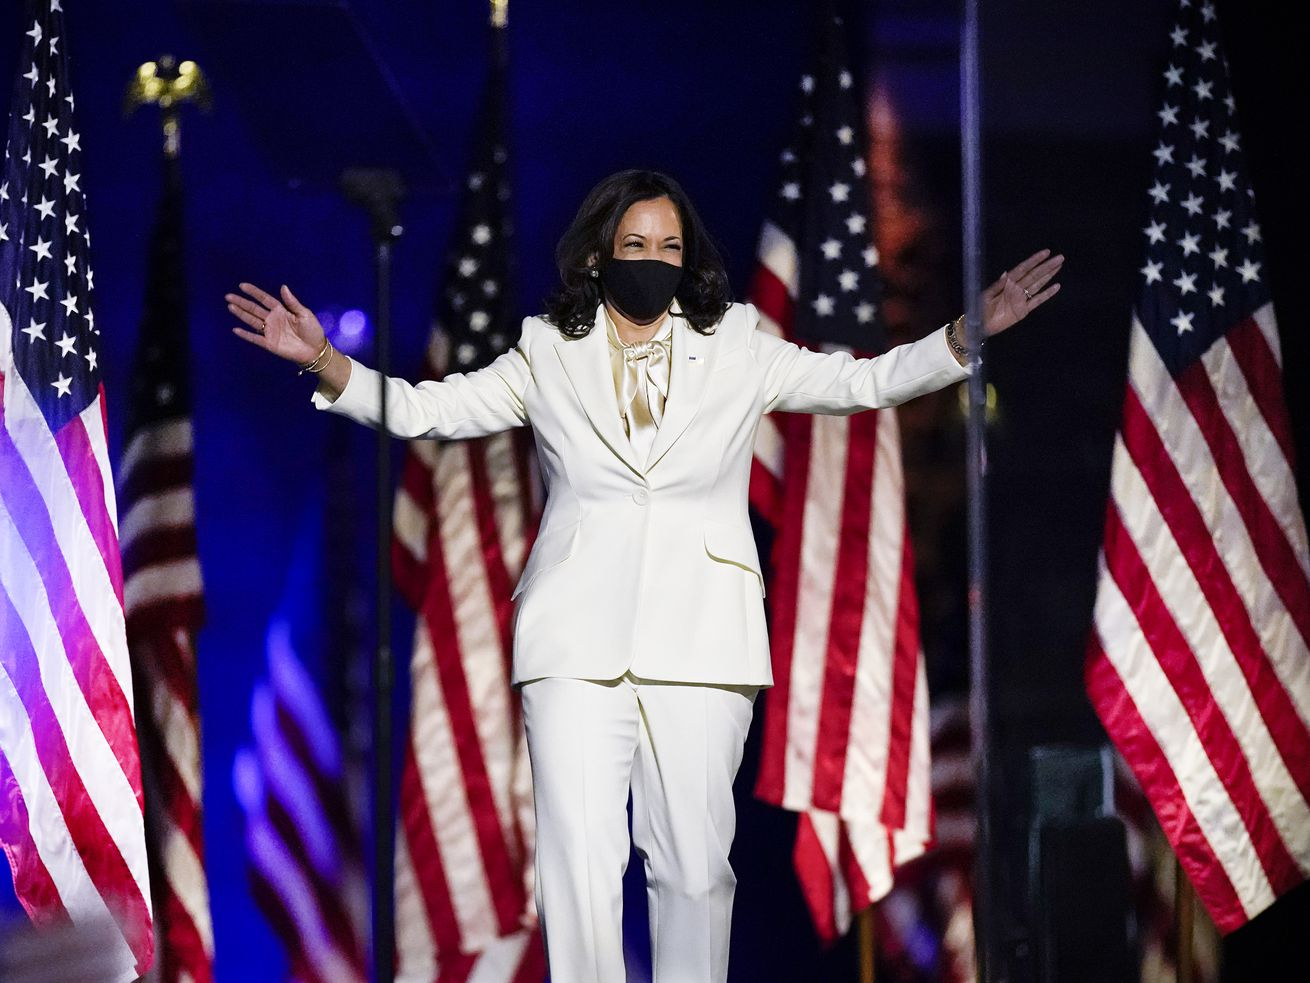 Harris spreads her arms as if hugging the crowd before her in a well tailored white suit, white silk pussy bow blouse, and black face mask. Behind her is a row of US flags, and she is illuminated by blue spotlights.